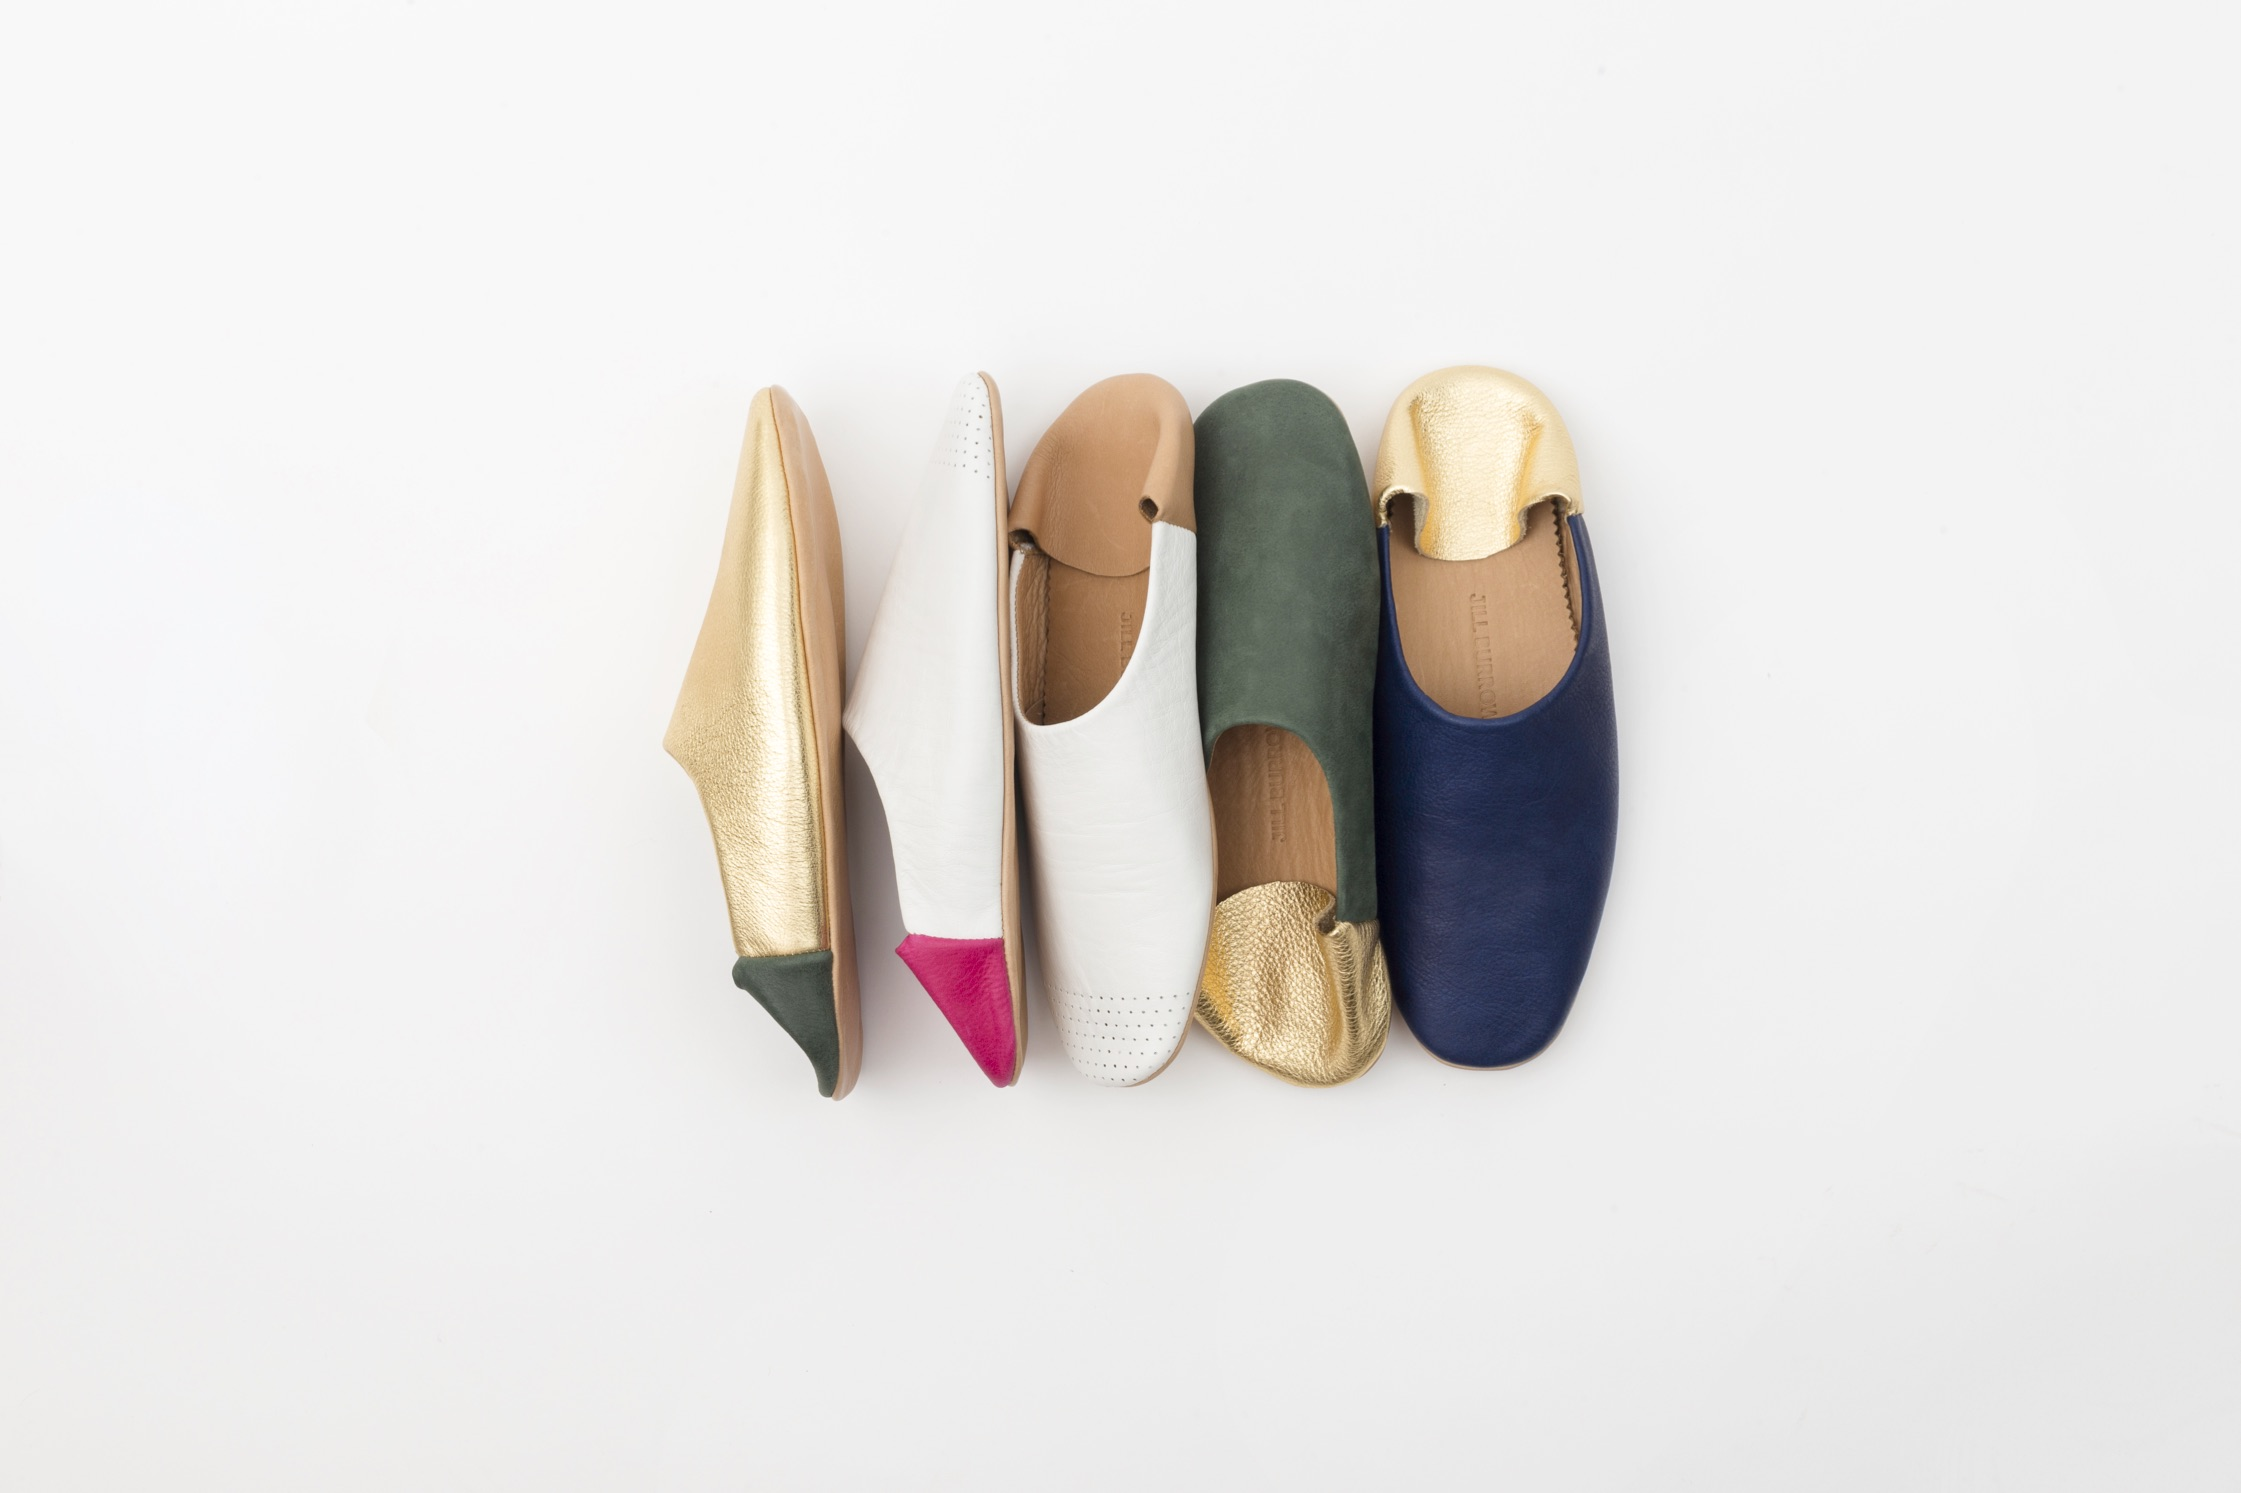 slippers-all-colors-jill-burrows